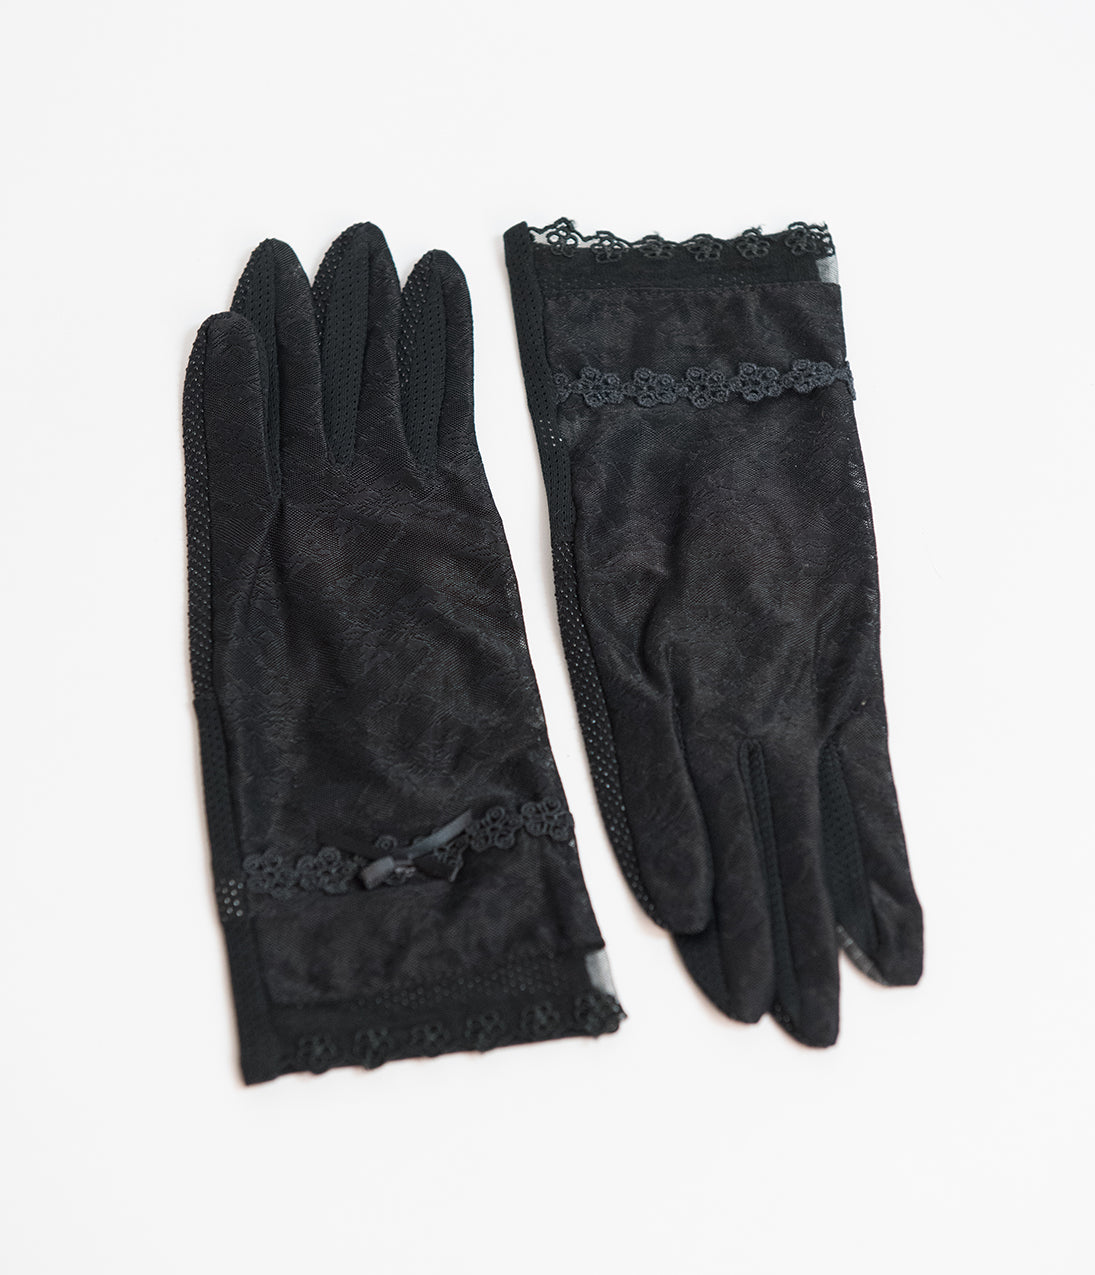 Vintage Style Gloves- Long, Wrist, Evening, Day, Leather, Lace Unique Vintage Black Mesh Lace Wrist Gloves $20.00 AT vintagedancer.com